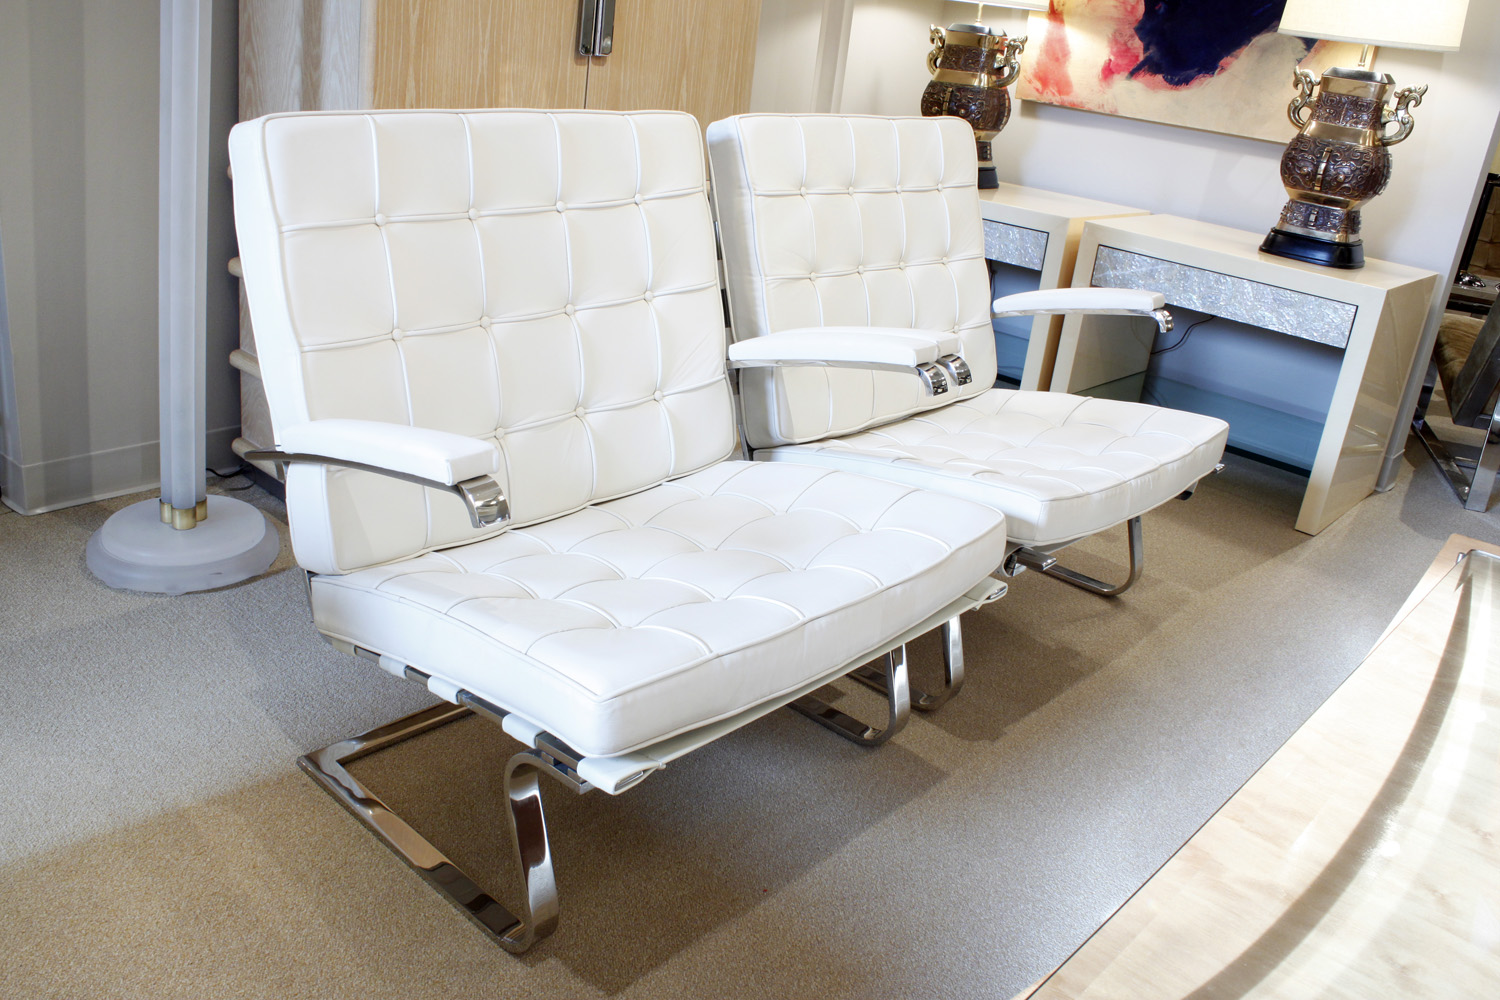 Rohe 150 Tugendhat white lthr loungechairs160 hires atm.jpg